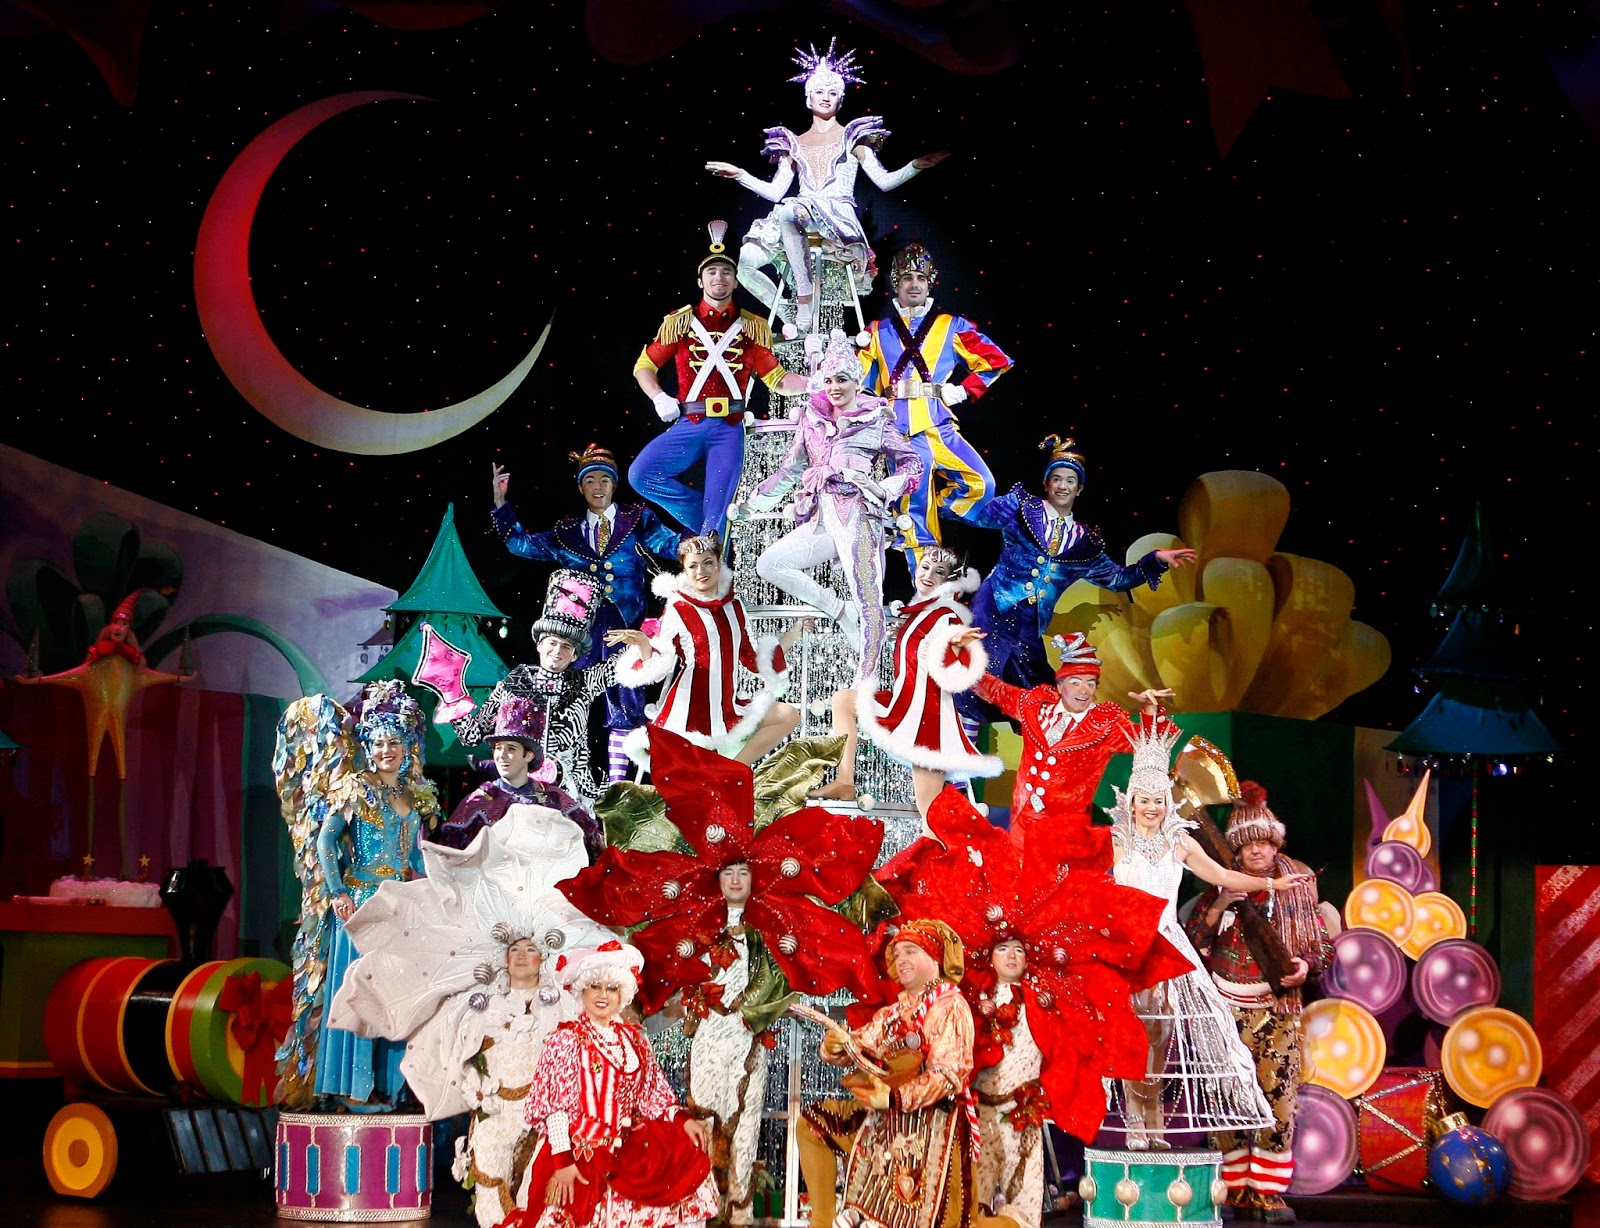 cirque dreams, holiday, holidays, holidaze, Detroit, Fox Theatre, giveaway, Michigan, event, show, win, theater,